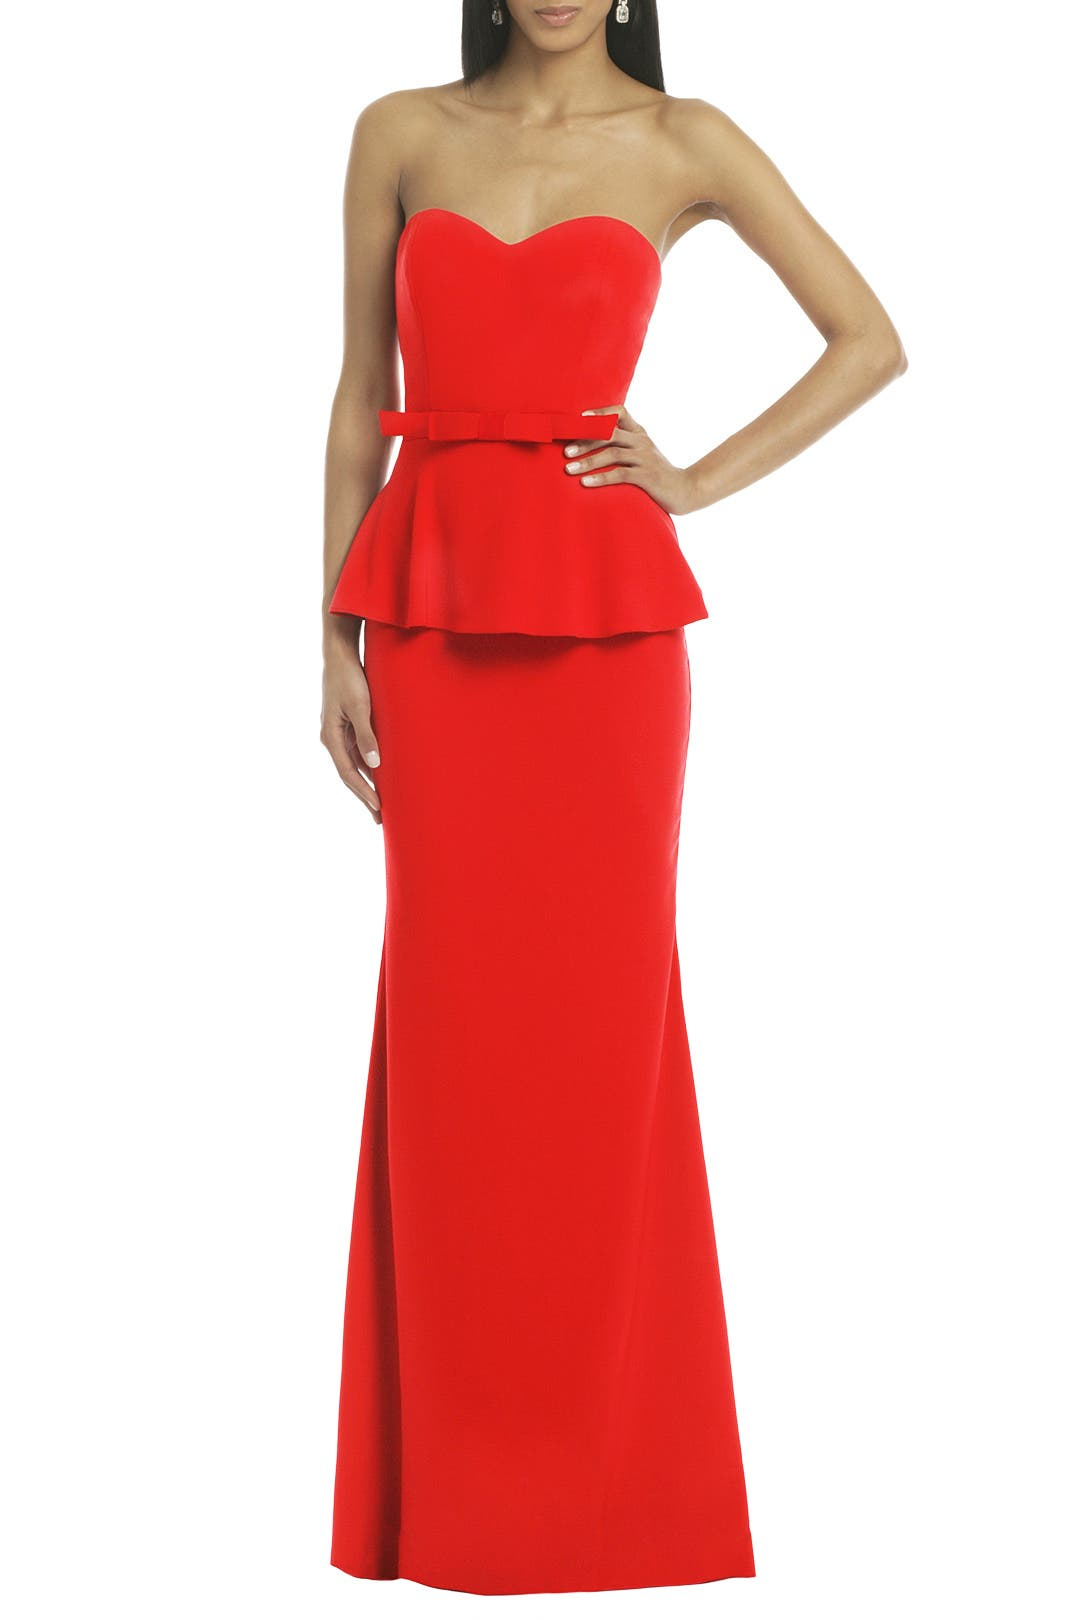 Rouge Rosalind Peplum Gown by Badgley Mischka for $50 - $70 | Rent ...